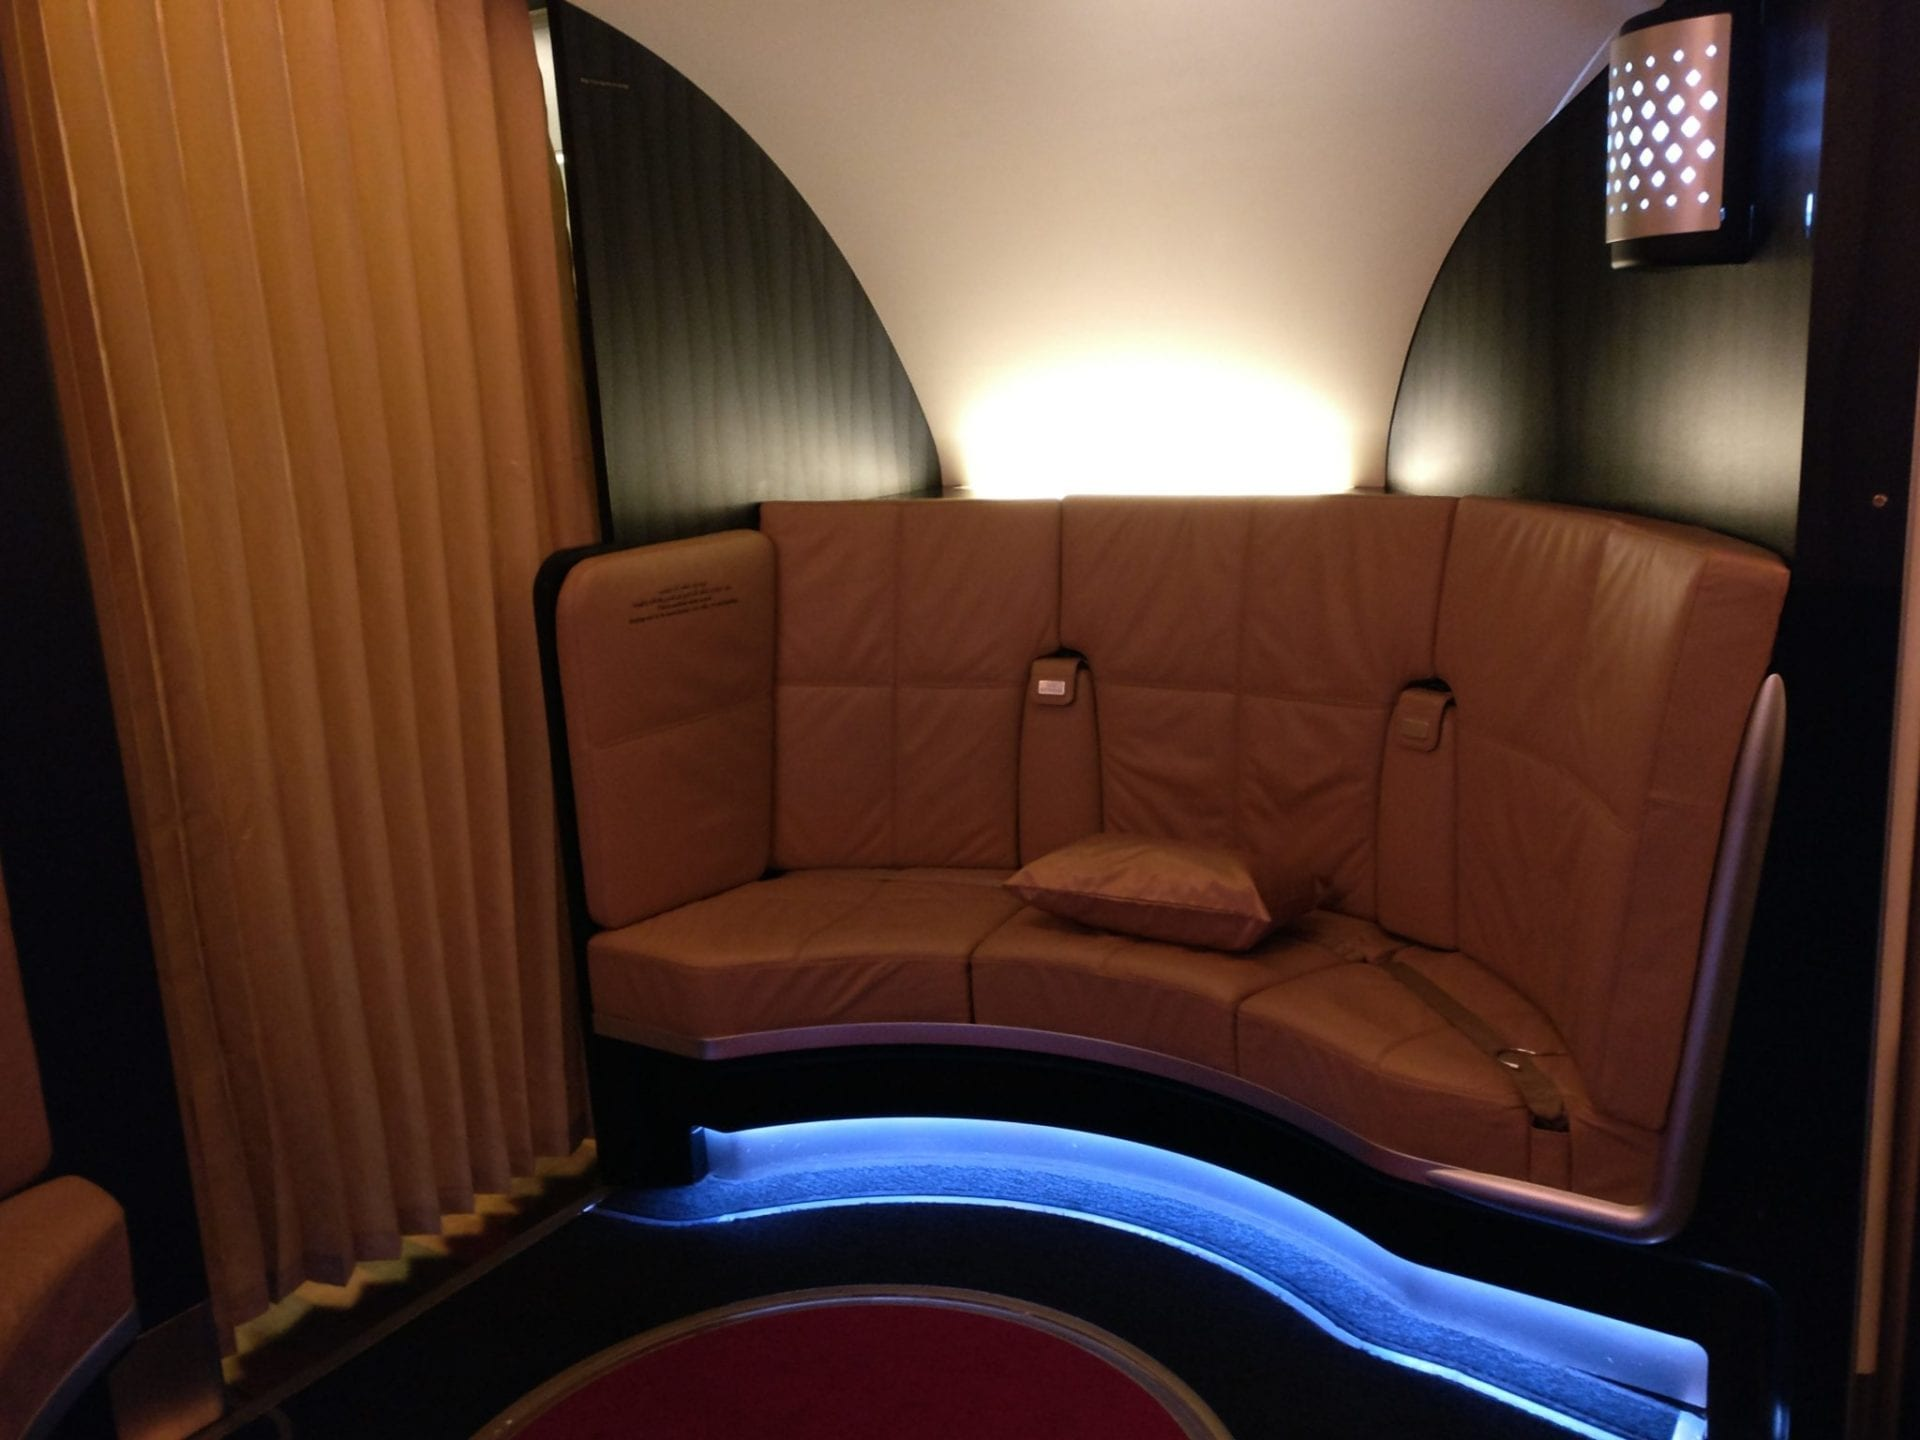 couch-etihad-a380-business-class